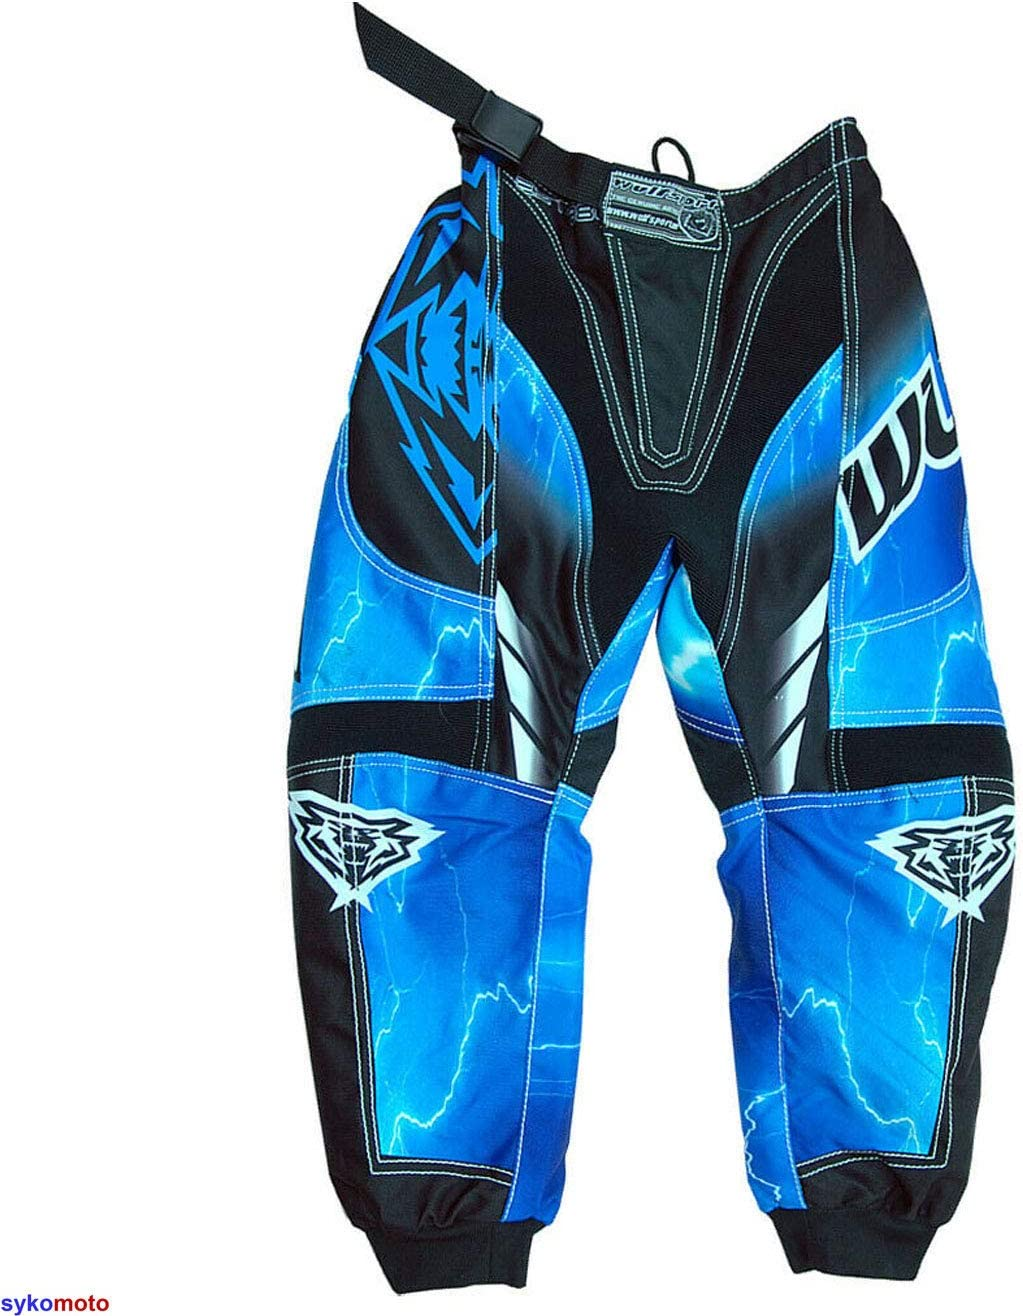 20 inches BLUE WULFSPORT MOTORCYCLE WULF KIDS FORTE PANTS 2020 SUPERCROSS DIRT PIT BIKE JUNIOR TROUSER